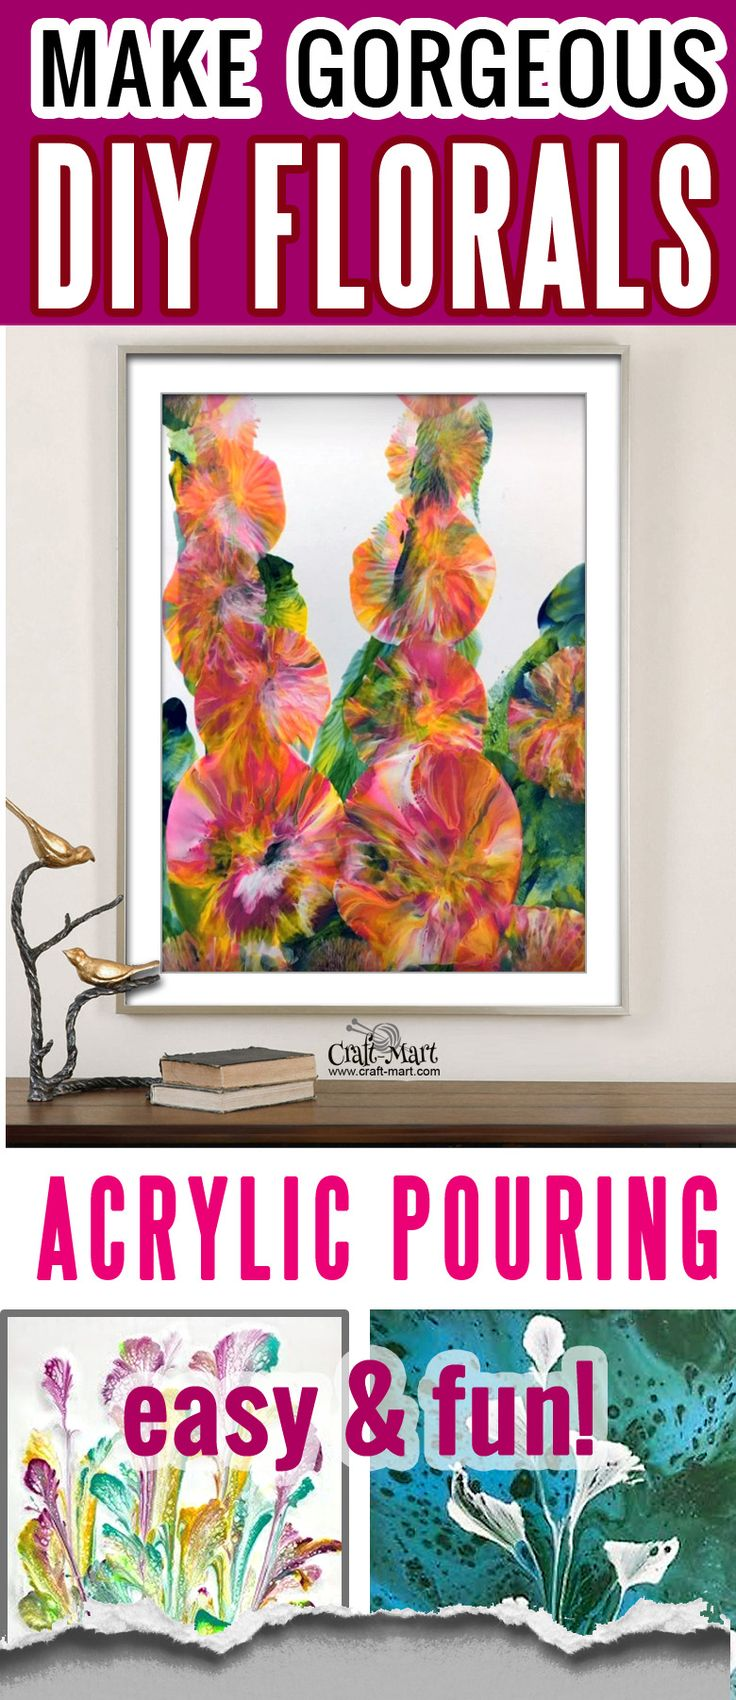 Make gorgeous DIY florals with acrylic pouring – easy and fun